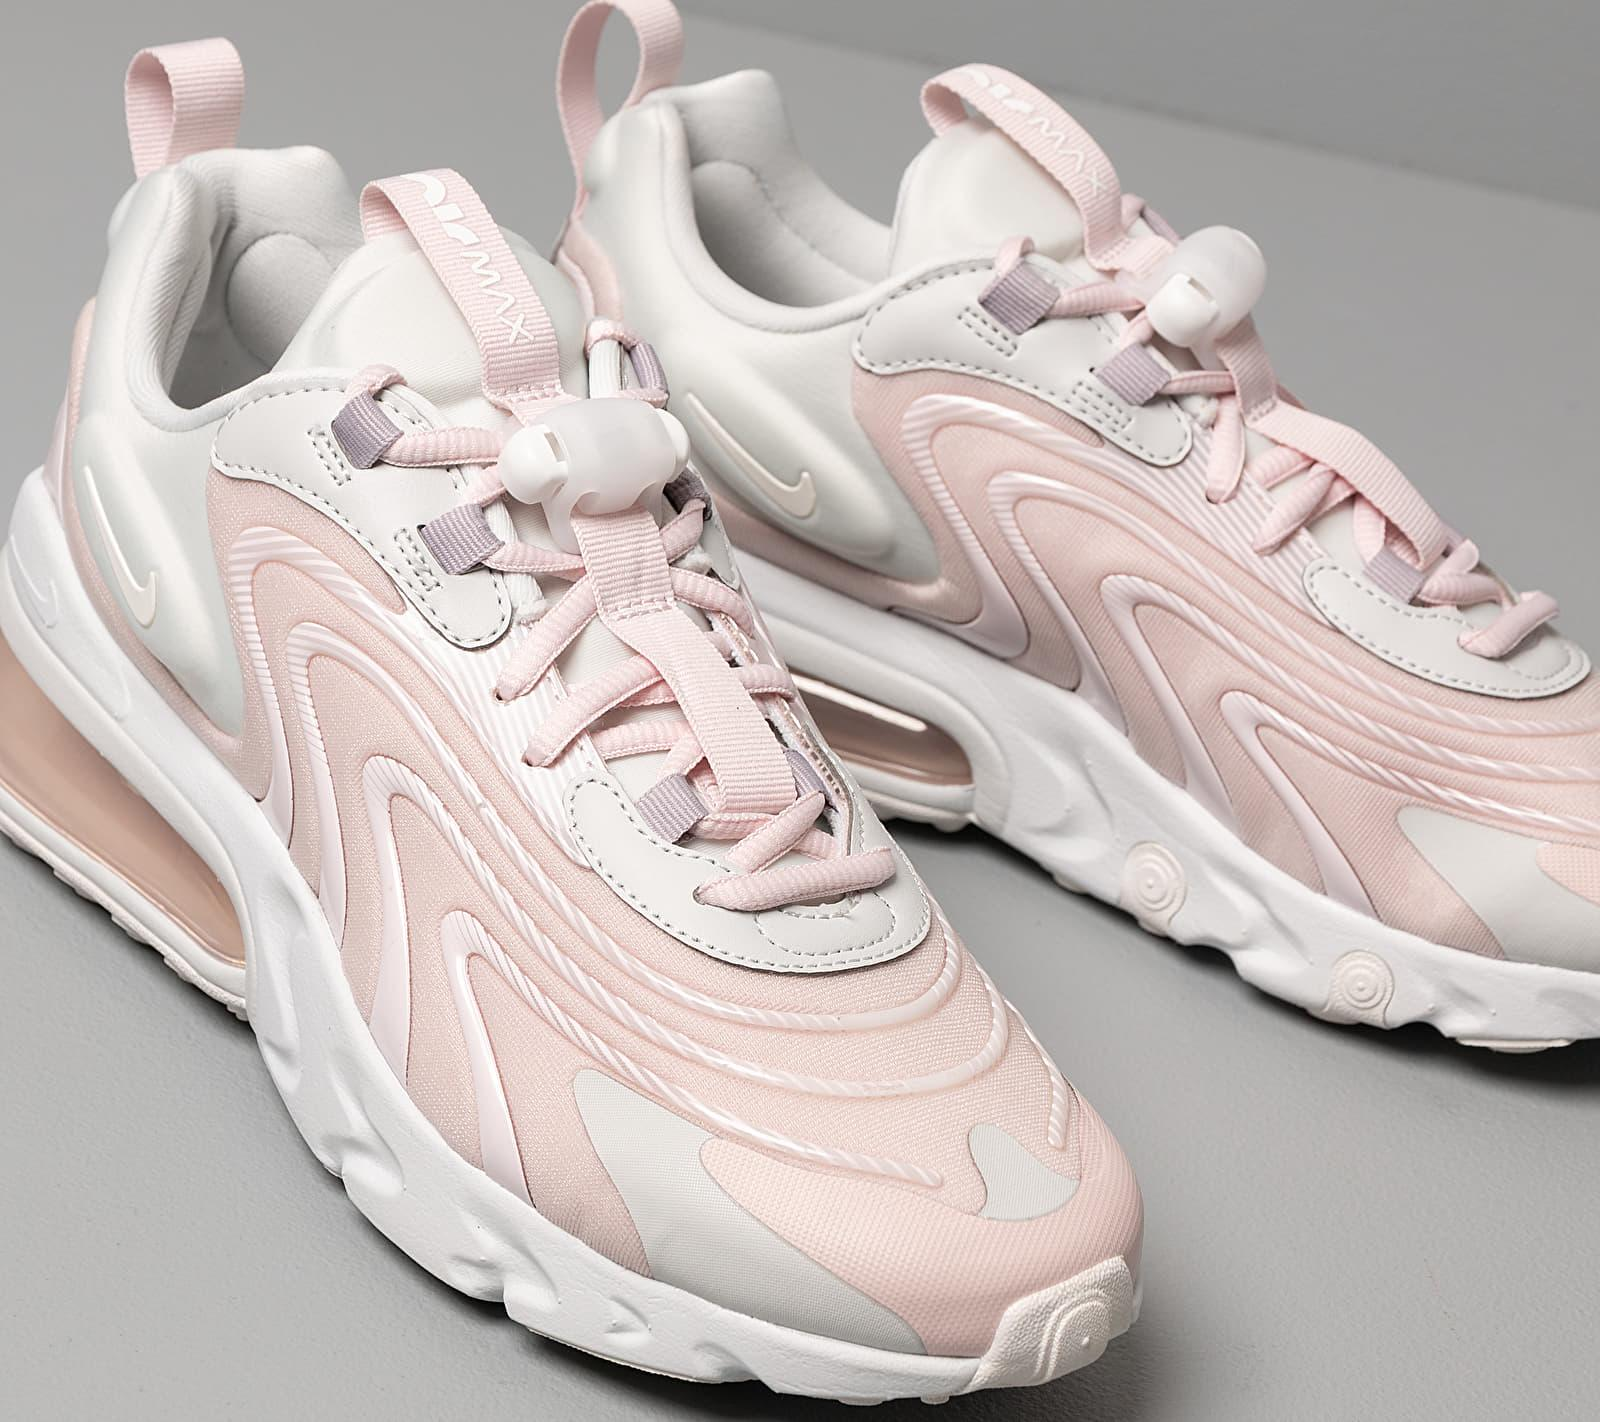 Nike W Air Max 270 React Eng Photon Dust Summit White Barely Rose